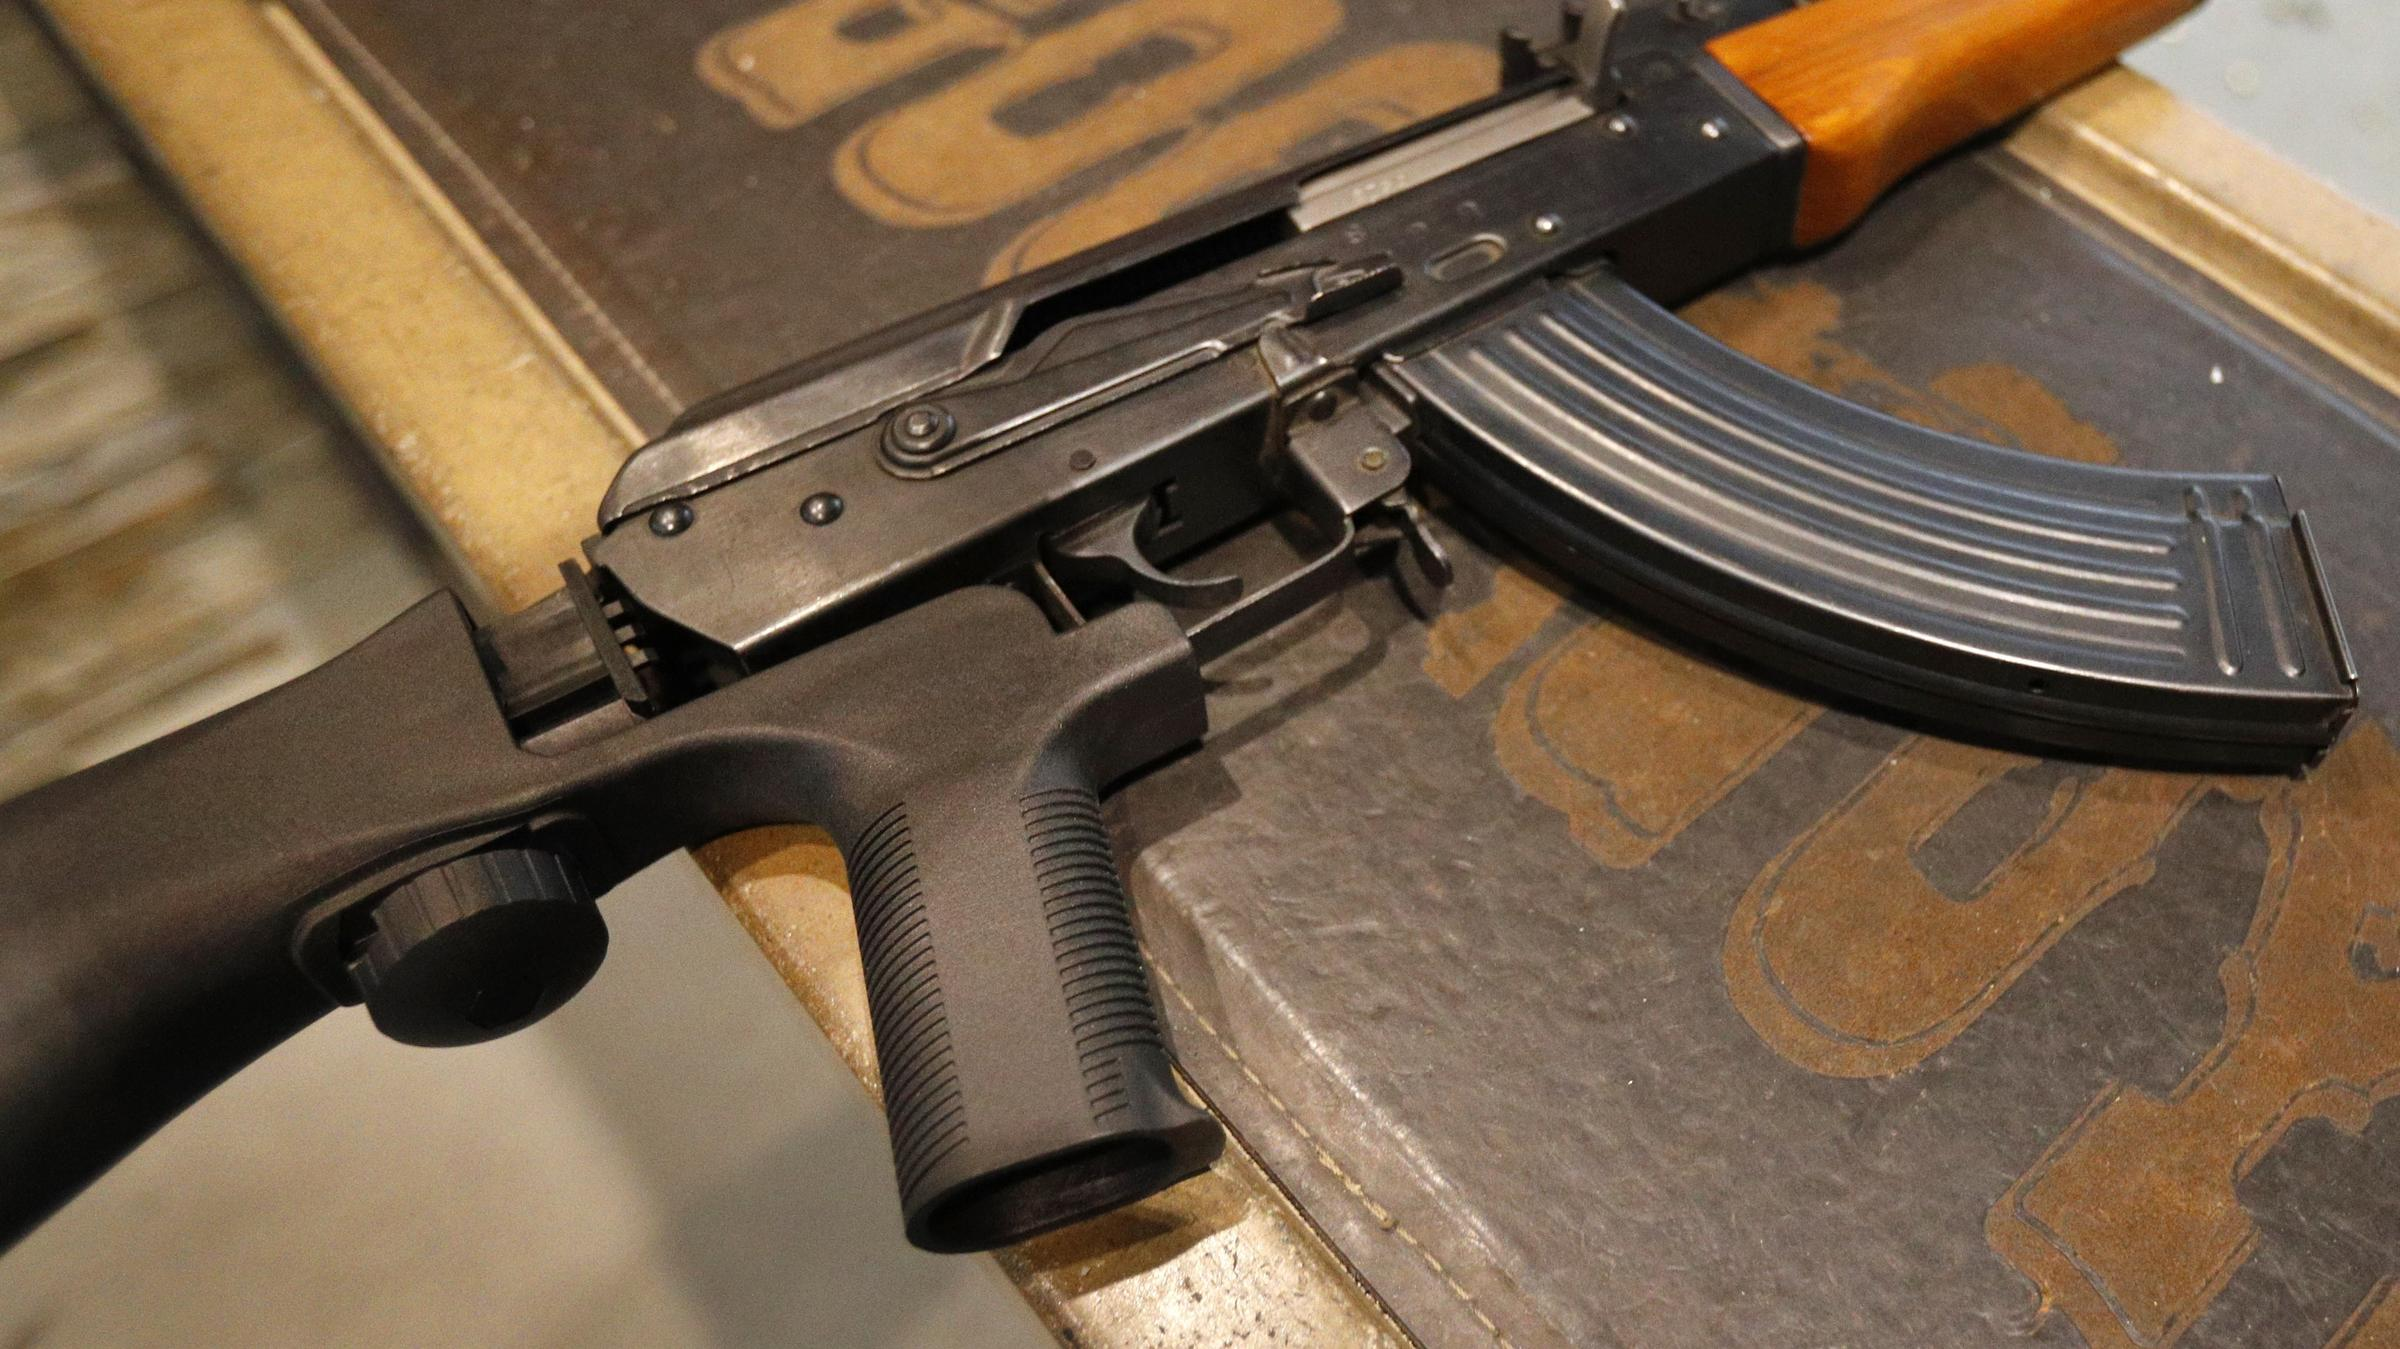 27e59db71 Bump stocks like this one installed on an AK-47 are now illegal in the  U.S., after the Trump administration changed how they are legally defined.